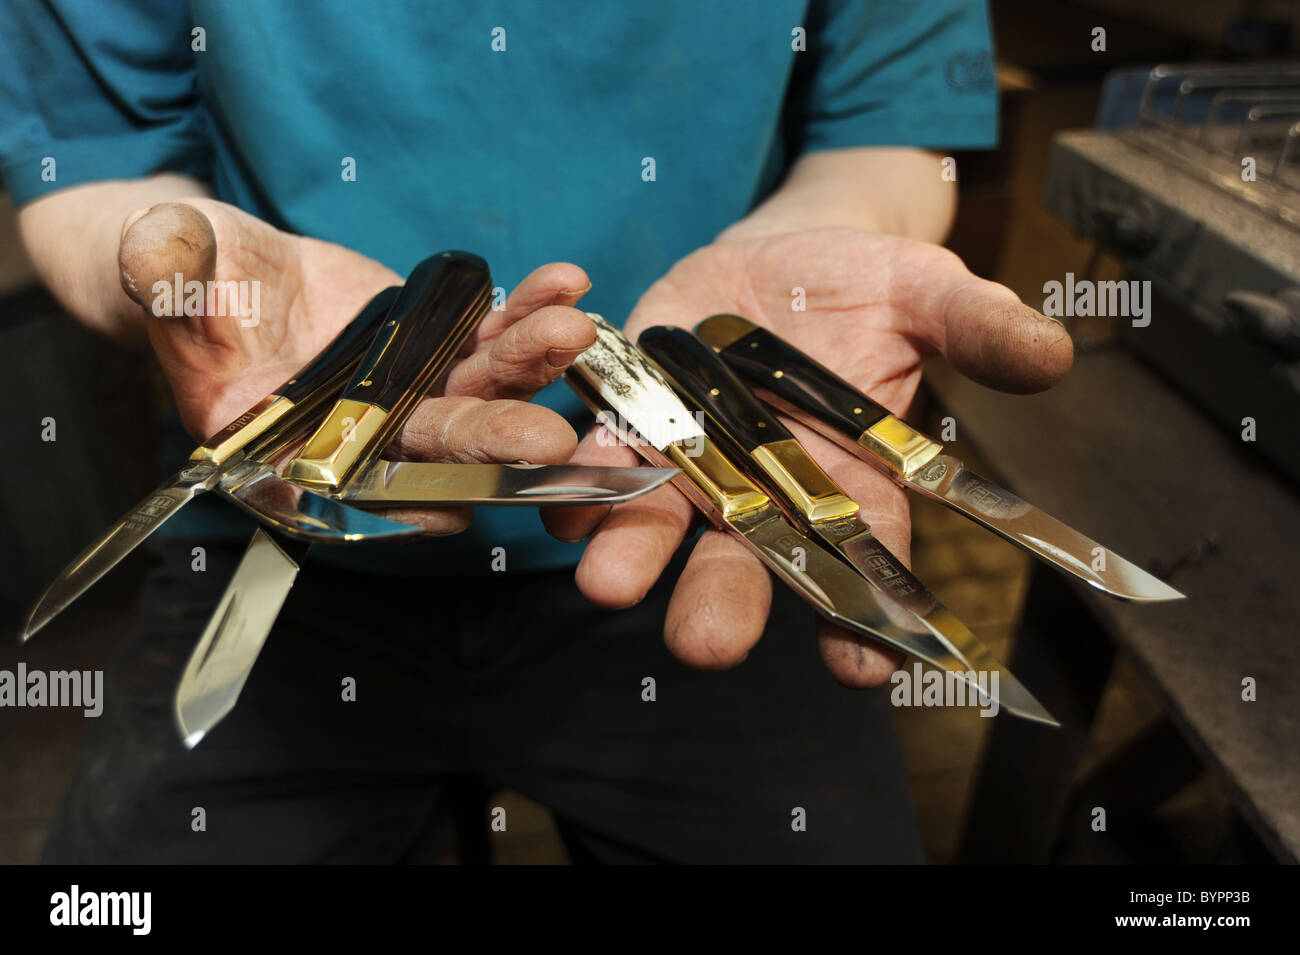 A craftsman making pocket knives in Sheffield - Stock Image